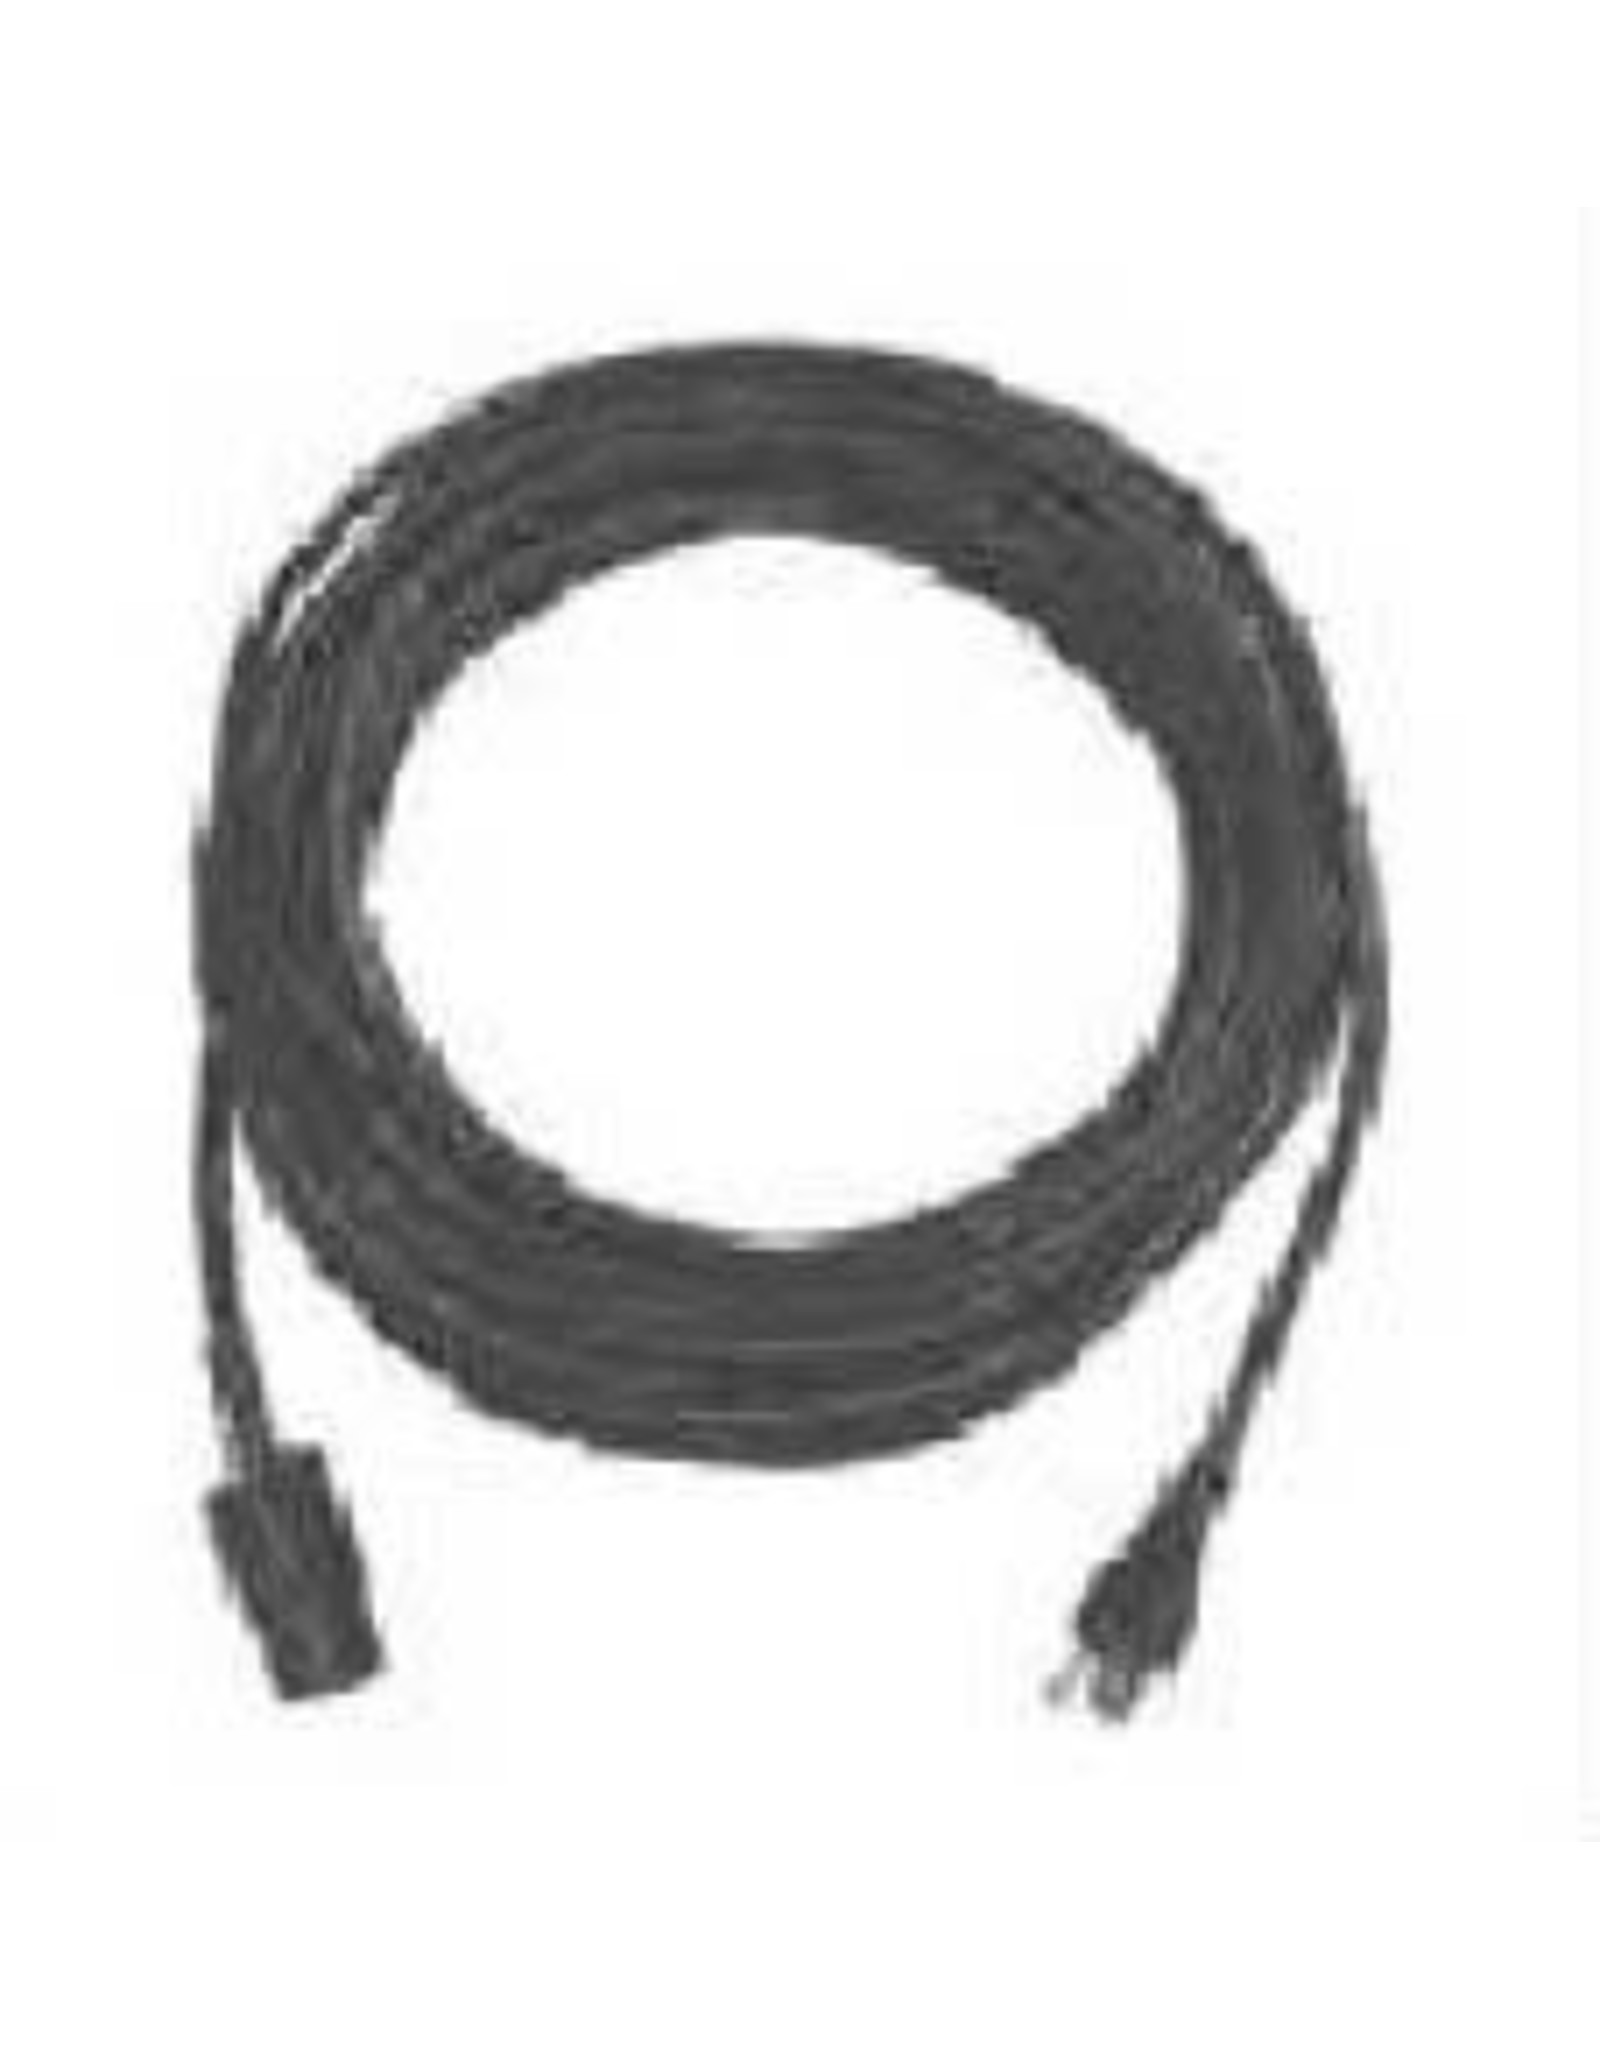 Pig Tail cable (16 guage)